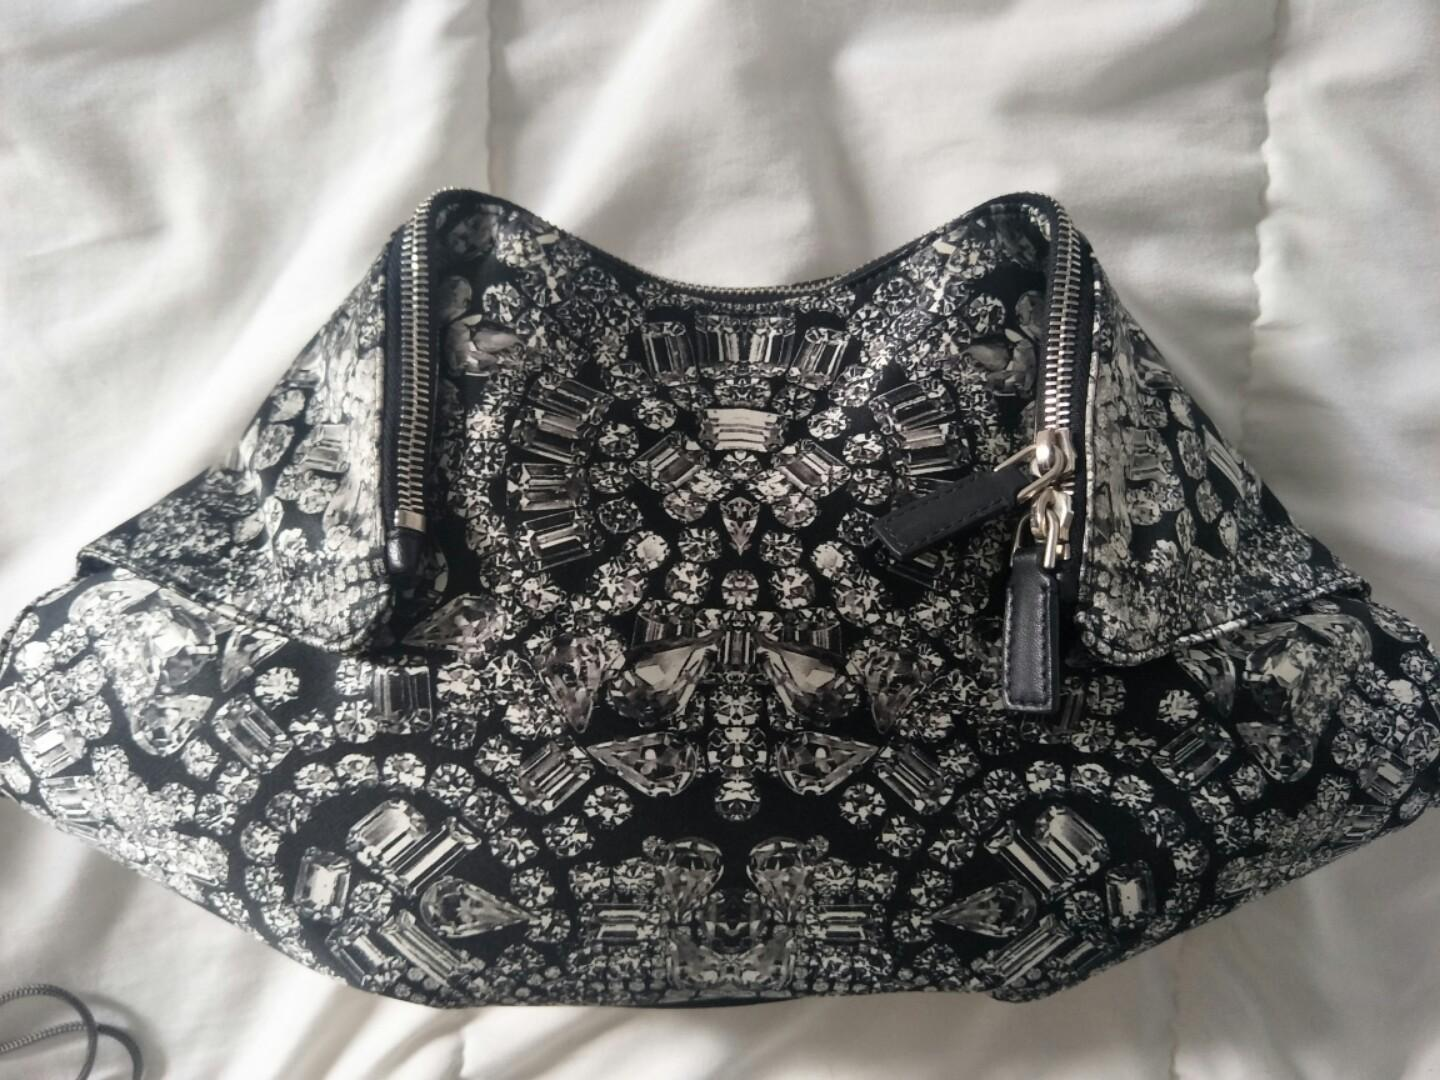 **Alexander McQueen clutch** As good as new!! Used once. RRP $740. Letting go at $600. Negotiable. Fastest fingers first!!